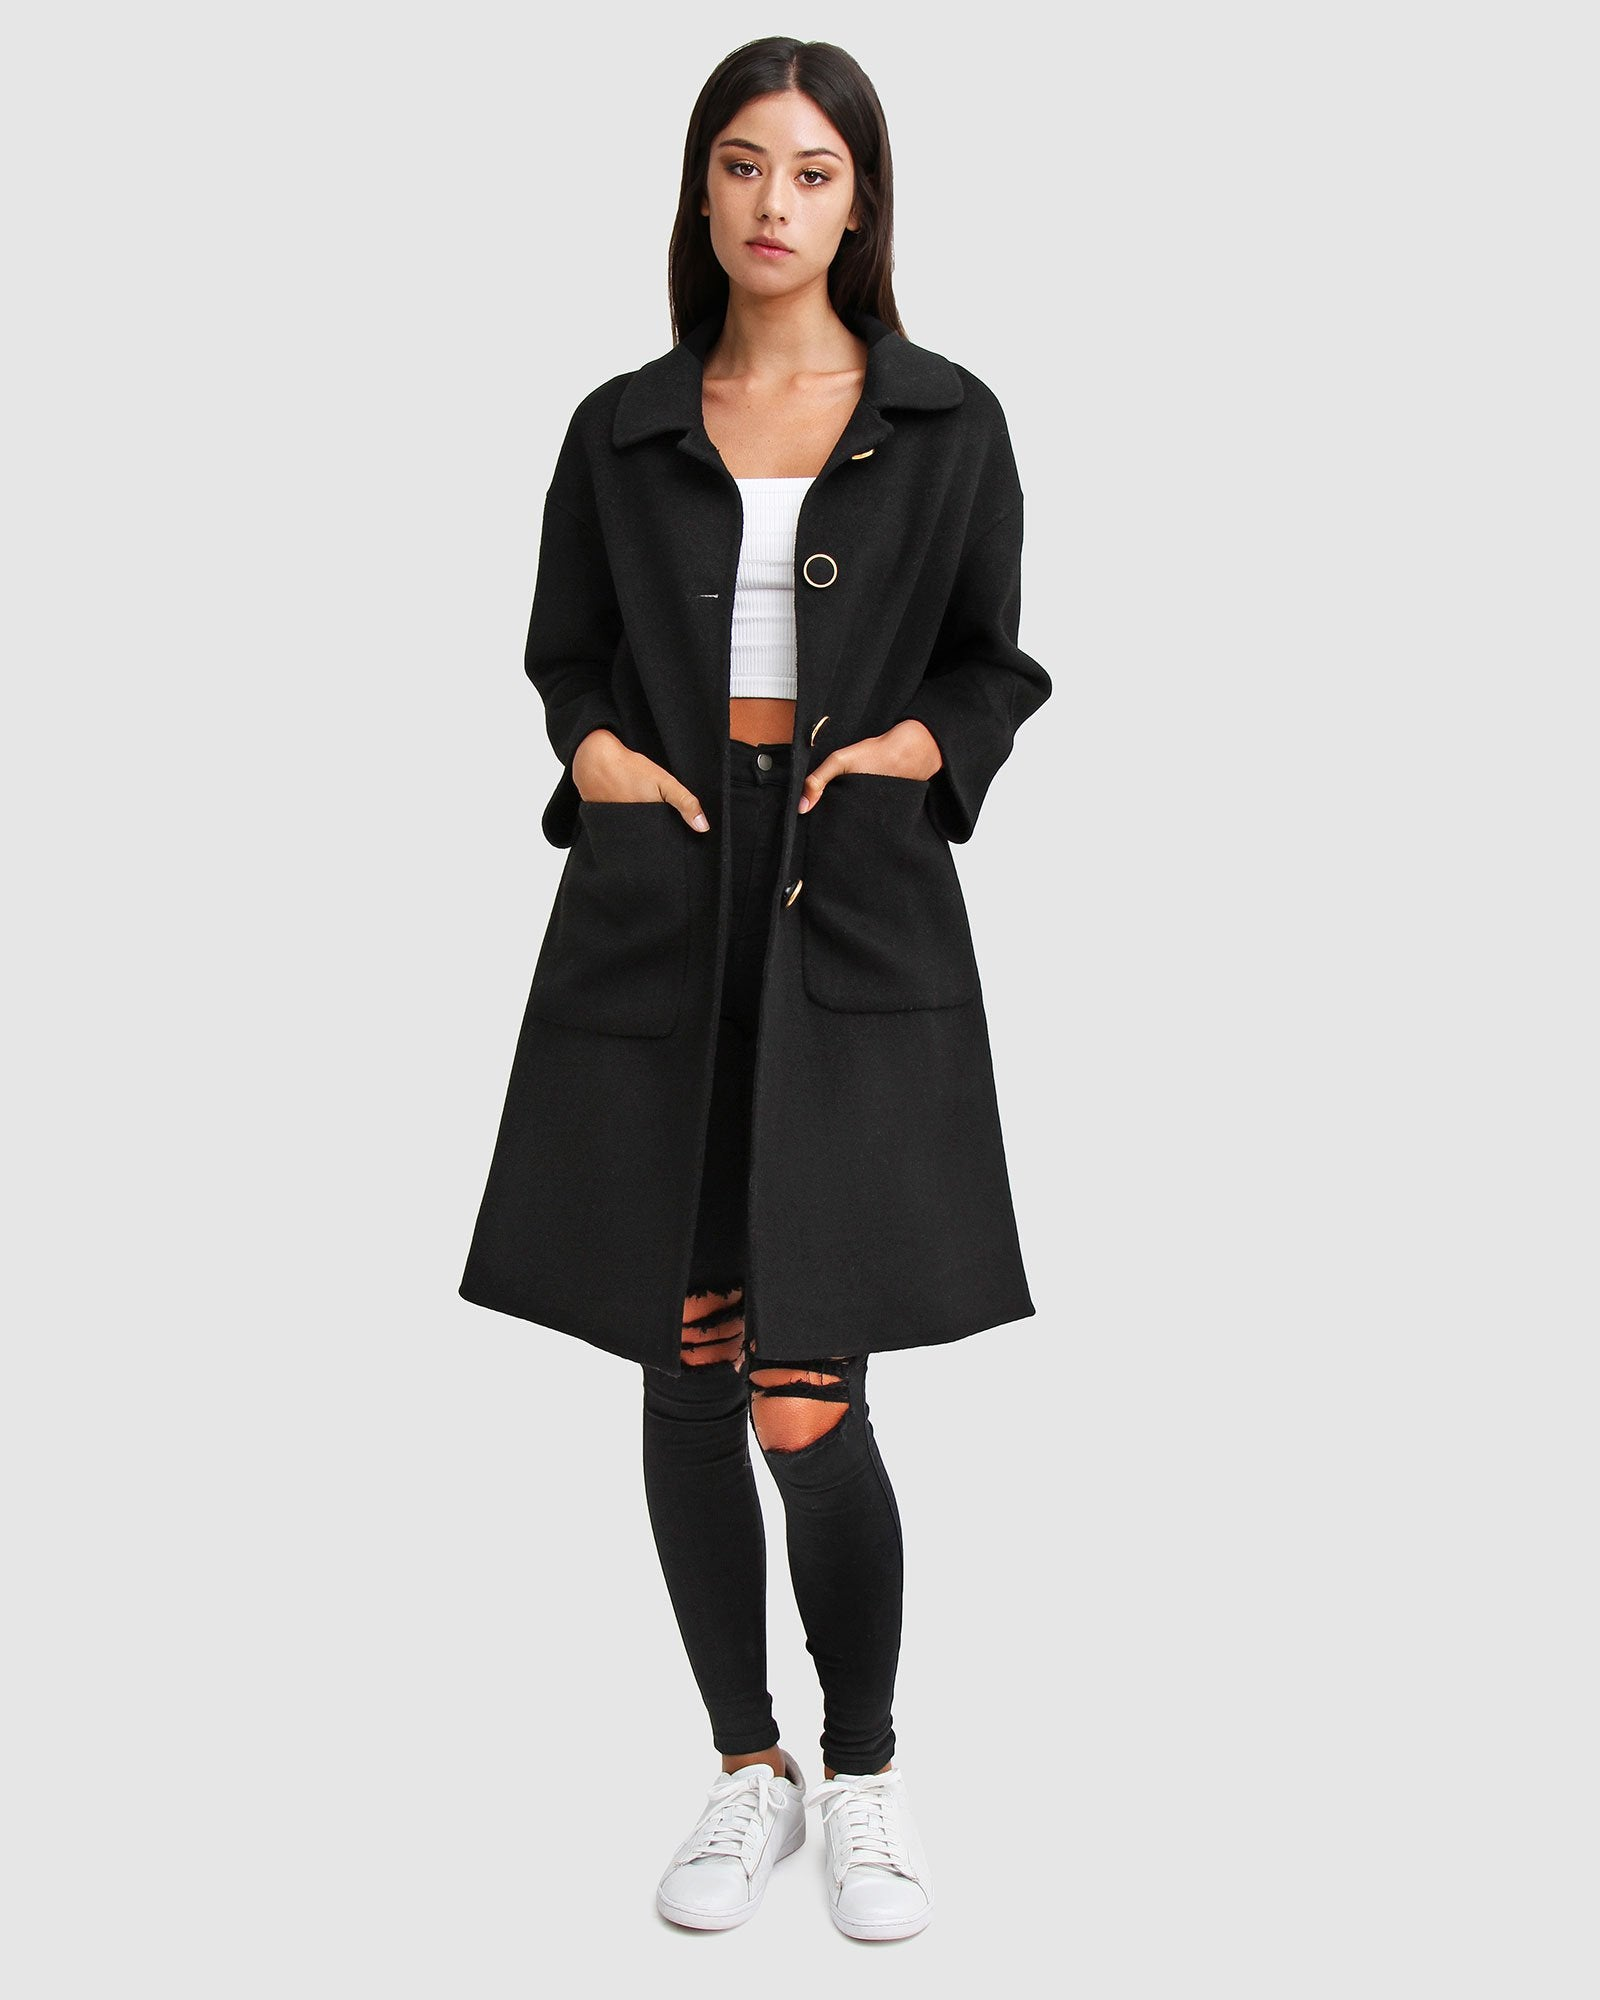 So Chic  Wool Blend Coat - Black